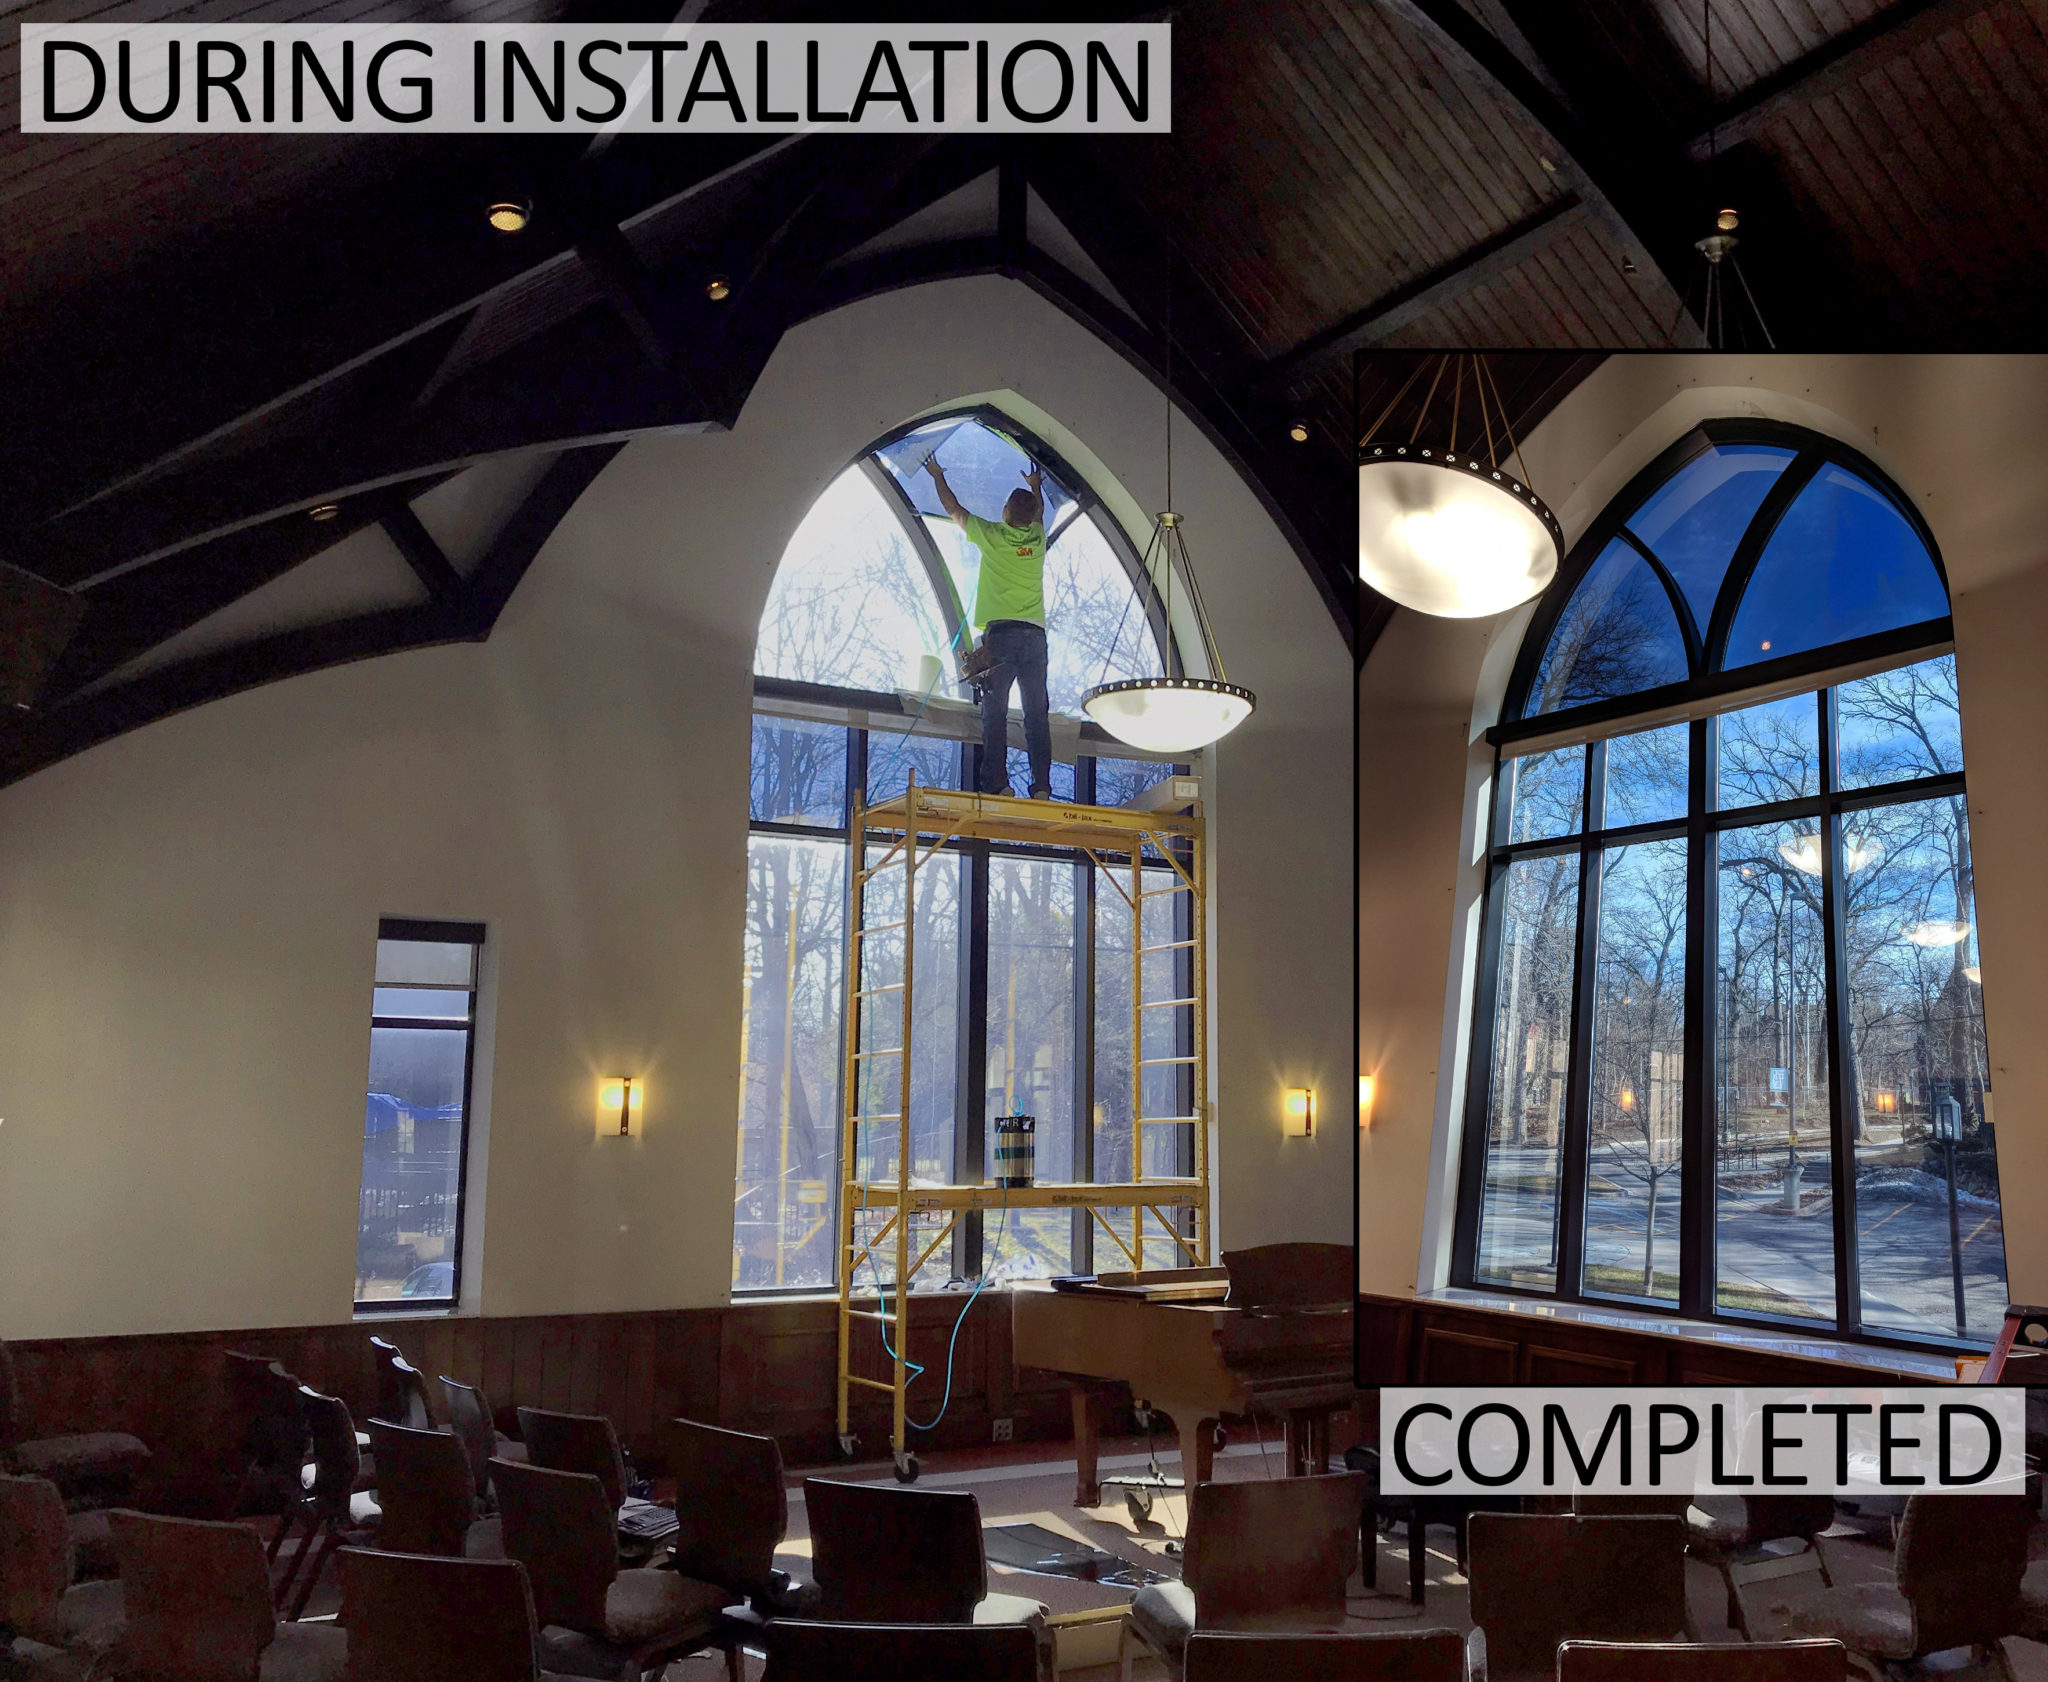 Beautiful Church in Ann Arbor, Michigan Gets a Window Film Upgrade